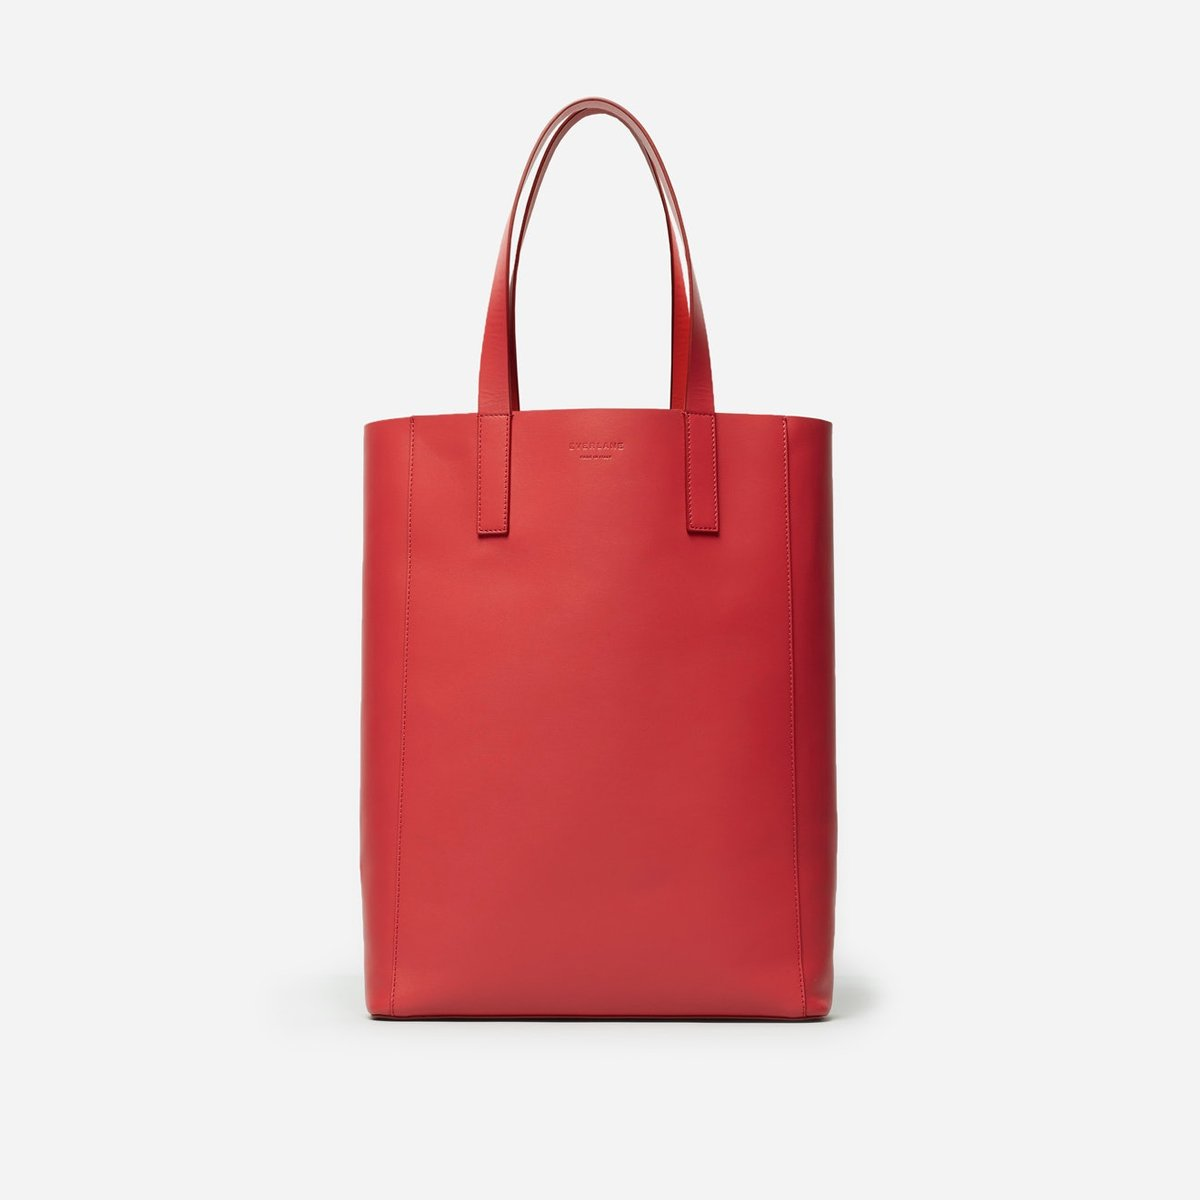 Your browser does not support HTML5 video. Here is the link to the video  The Day Magazine Tote - Red.